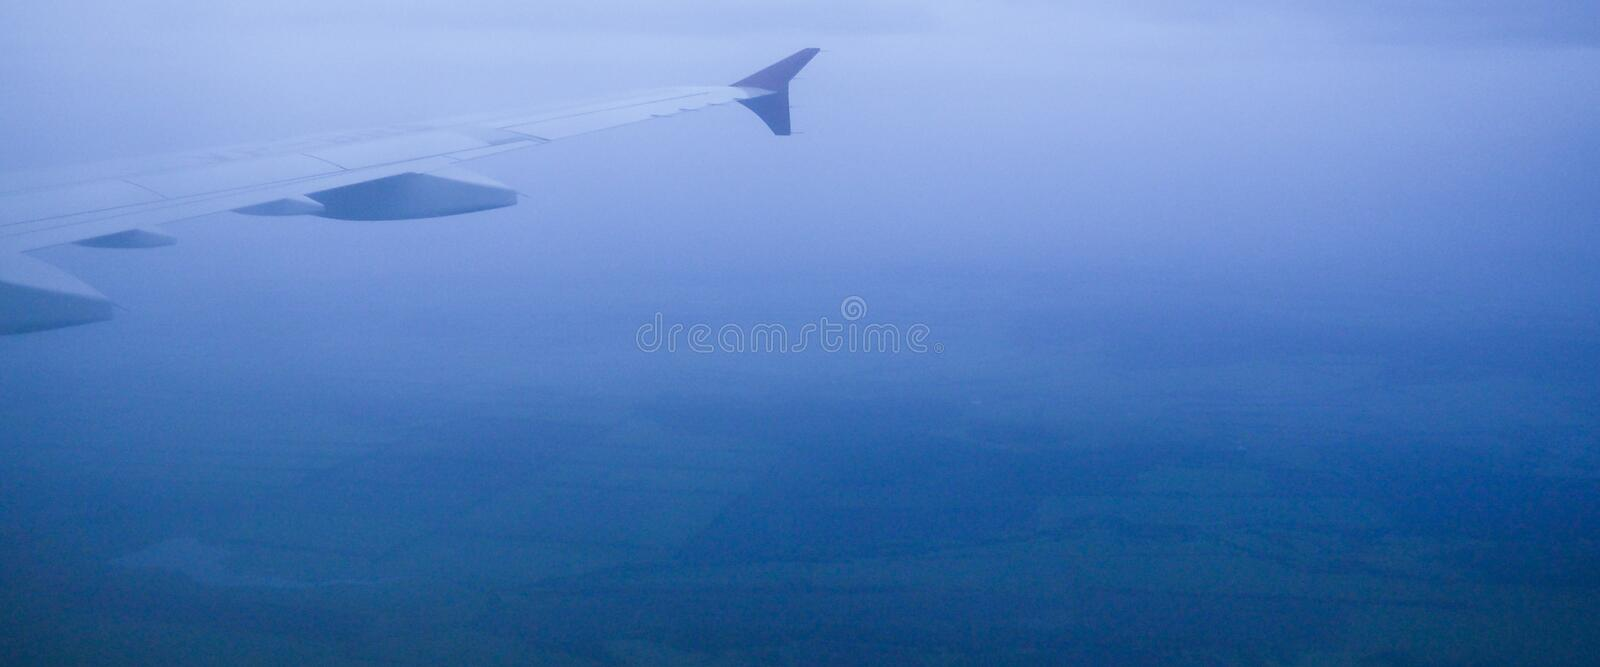 banner for website, View of jet plane wing with cloud patterns in the fog stock photography